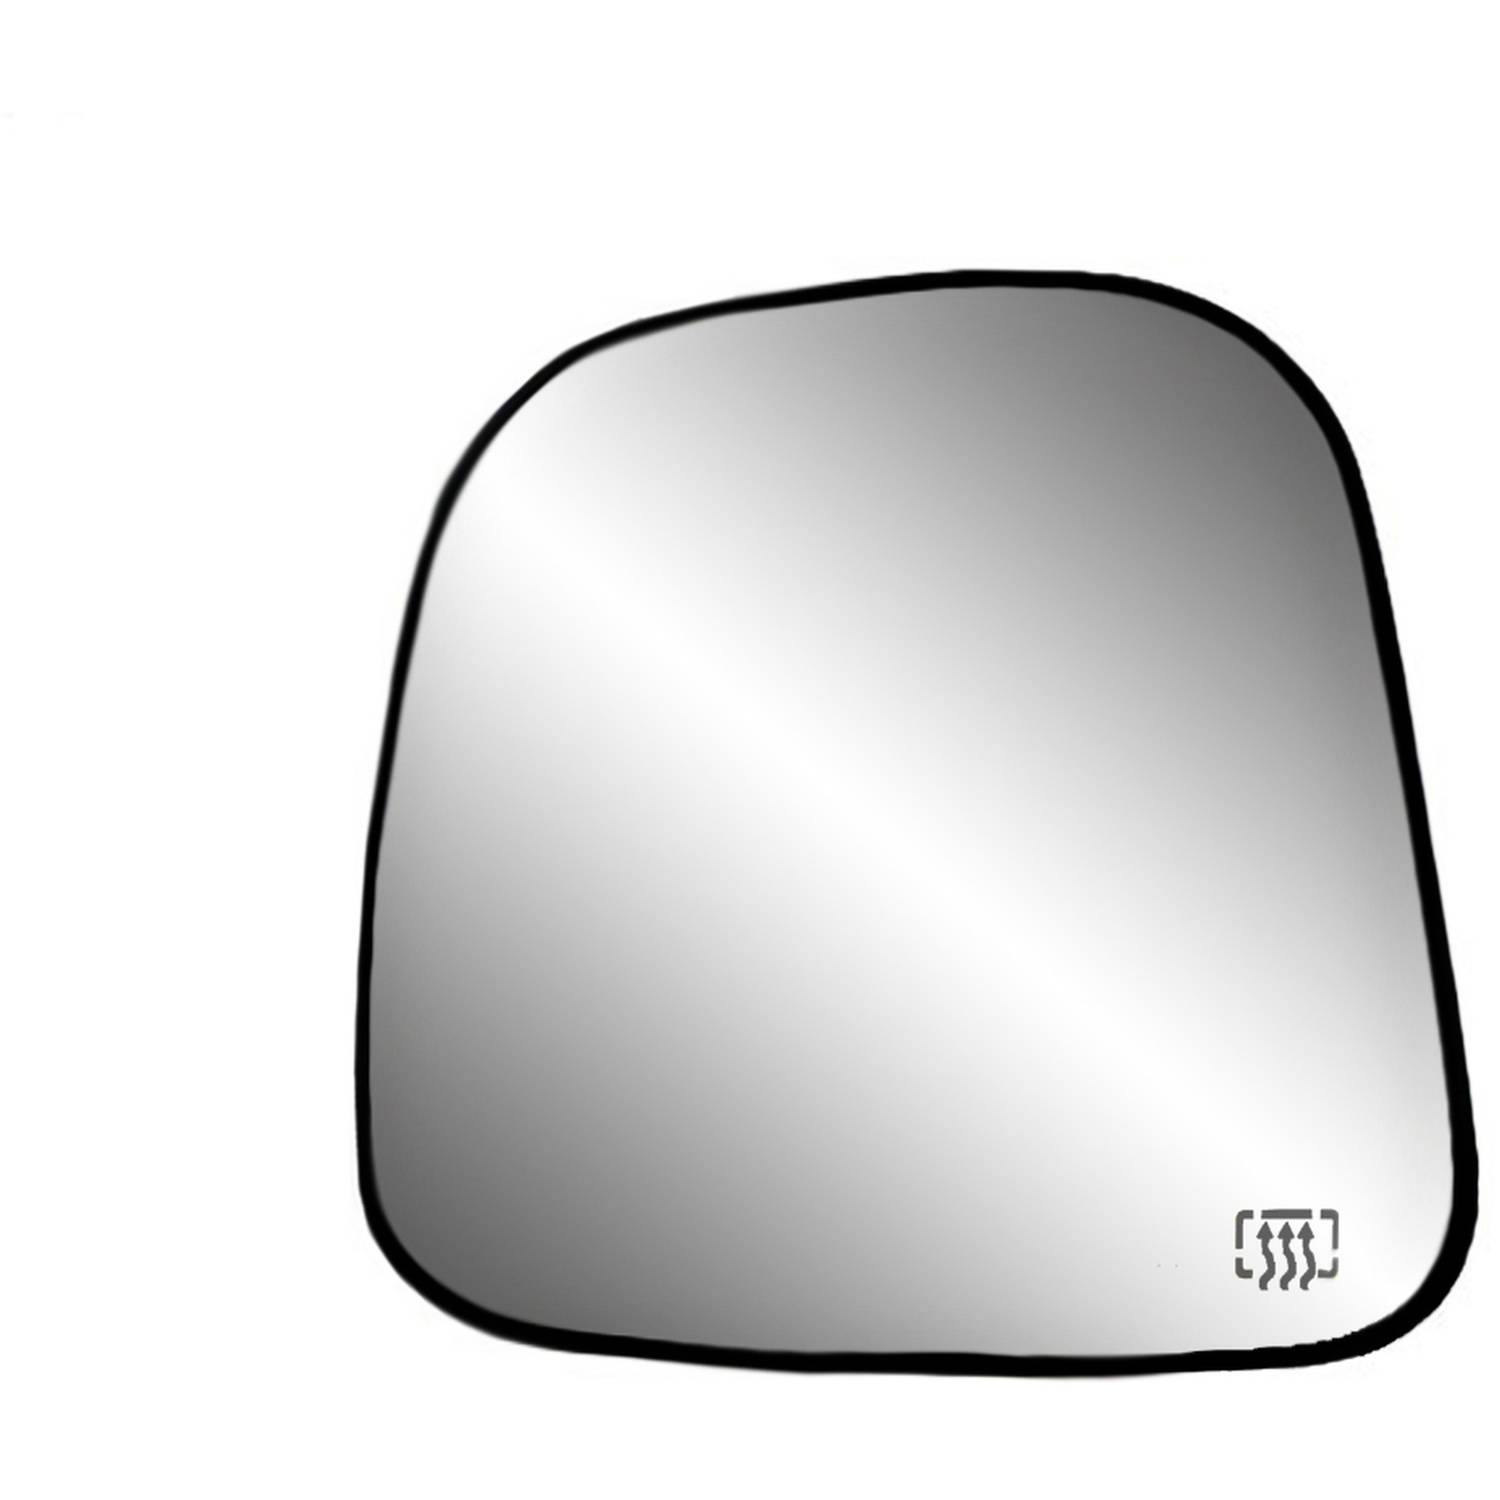 33196 - Fit System 96-02 Chevrolet Express / GMC Savana Heated Replacement Mirror Glass with backing plate, Driver Side - check description for fitment